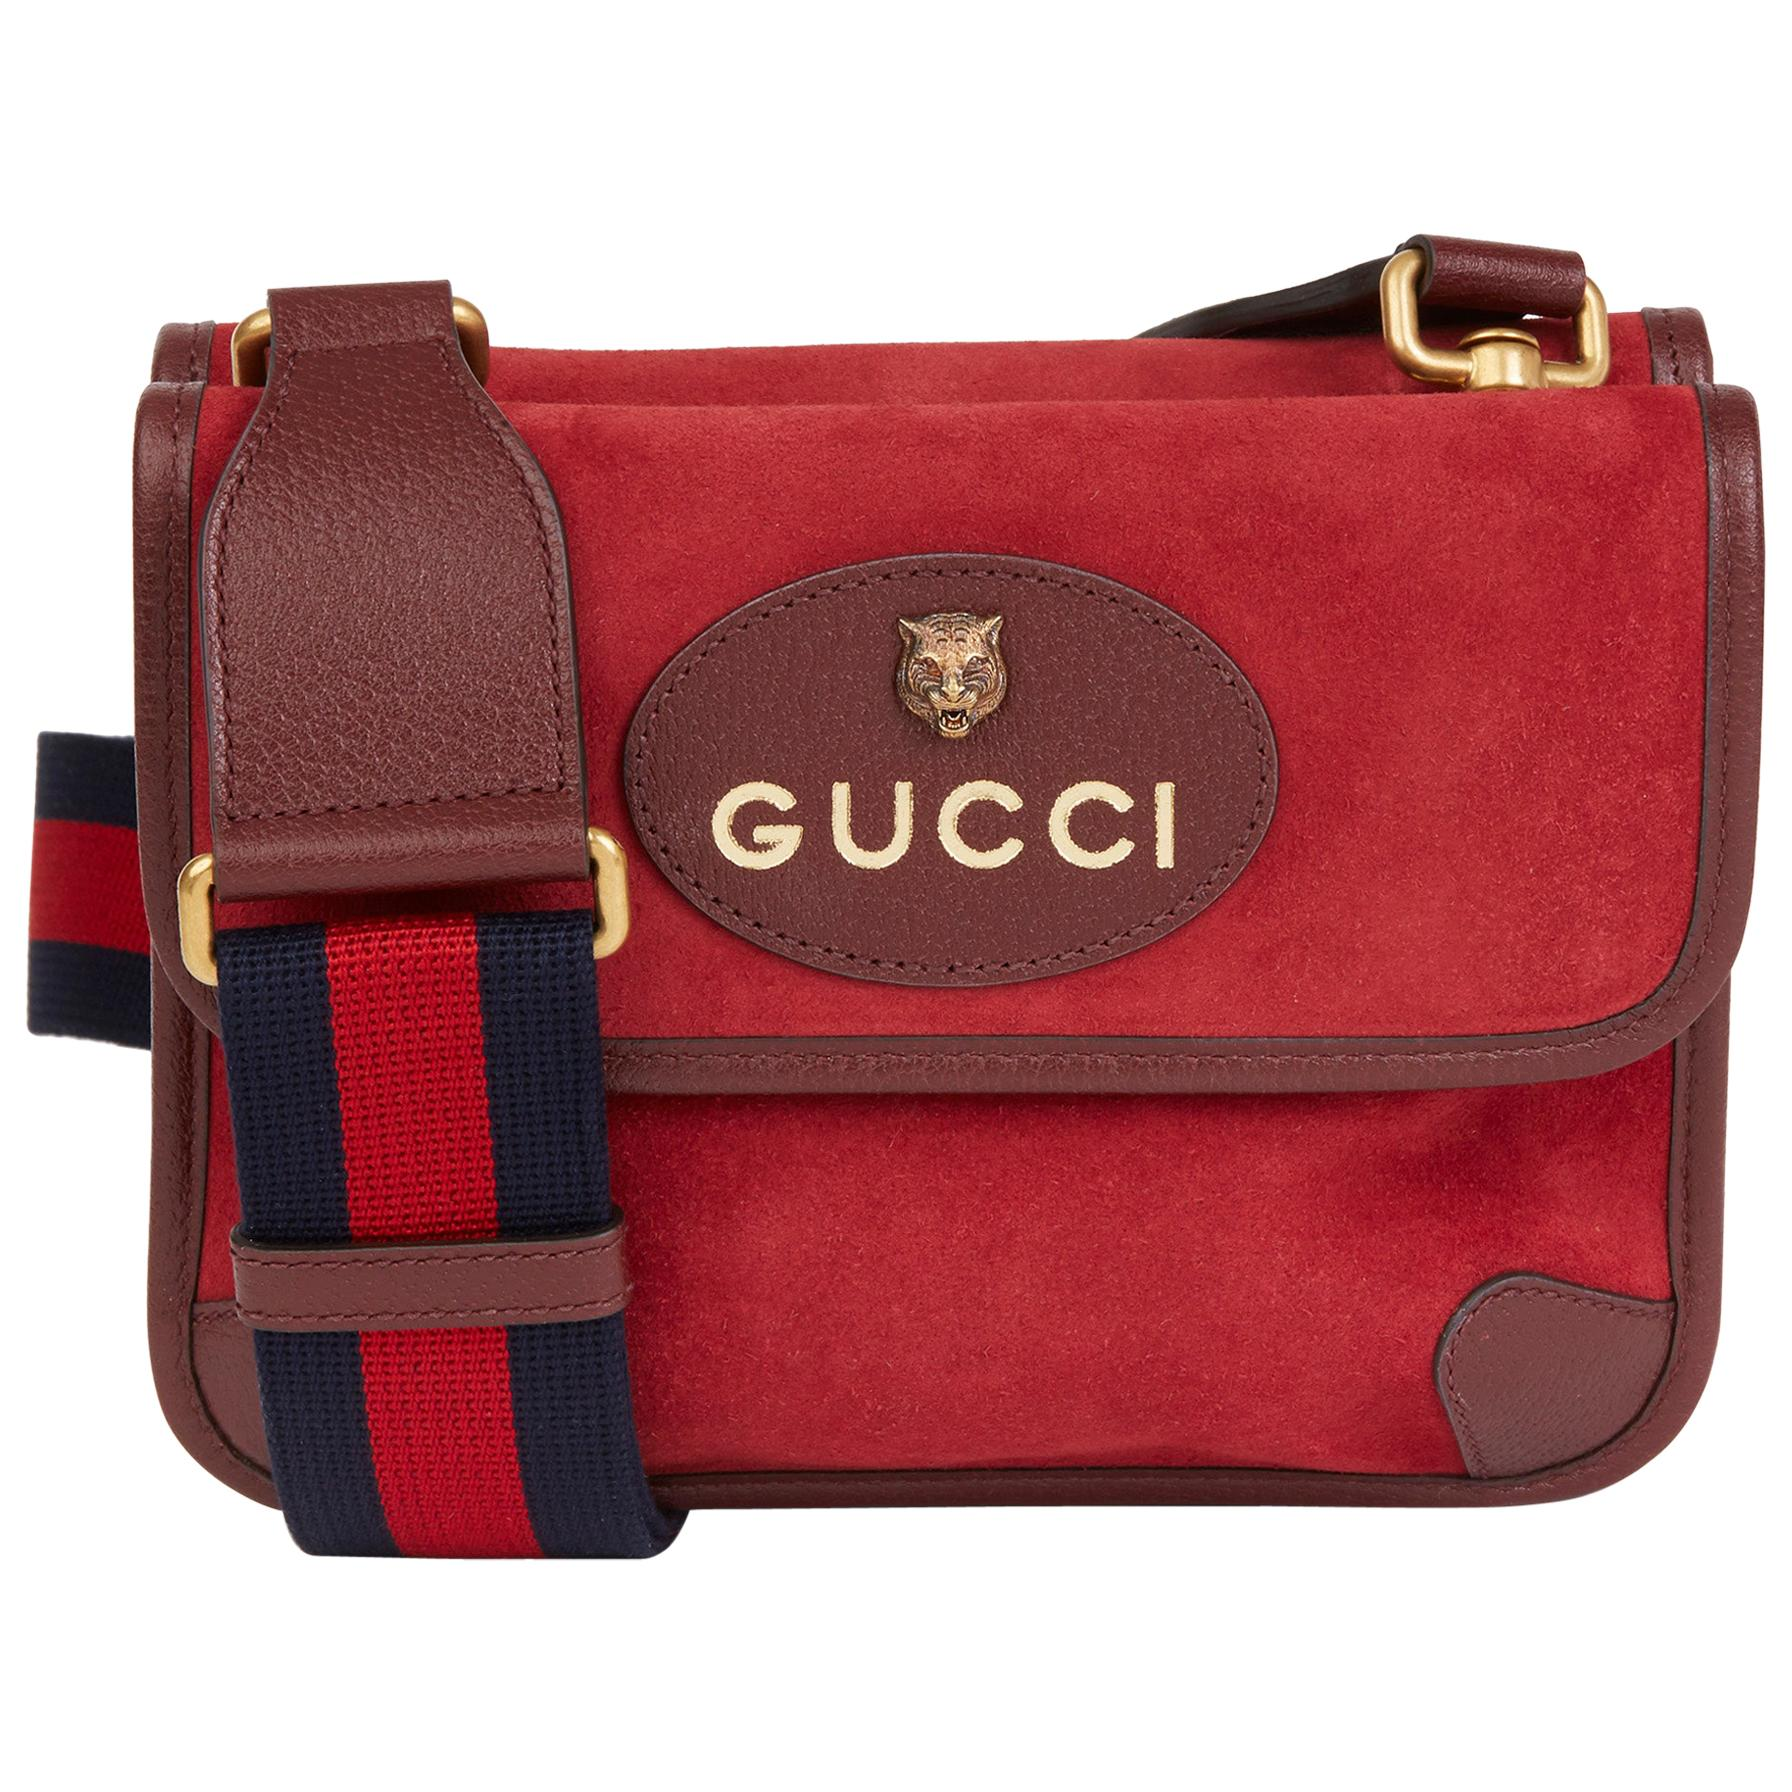 2020 Gucci Red Suede & Burgundy Pigskin, Navy Web Small Messenger Bag